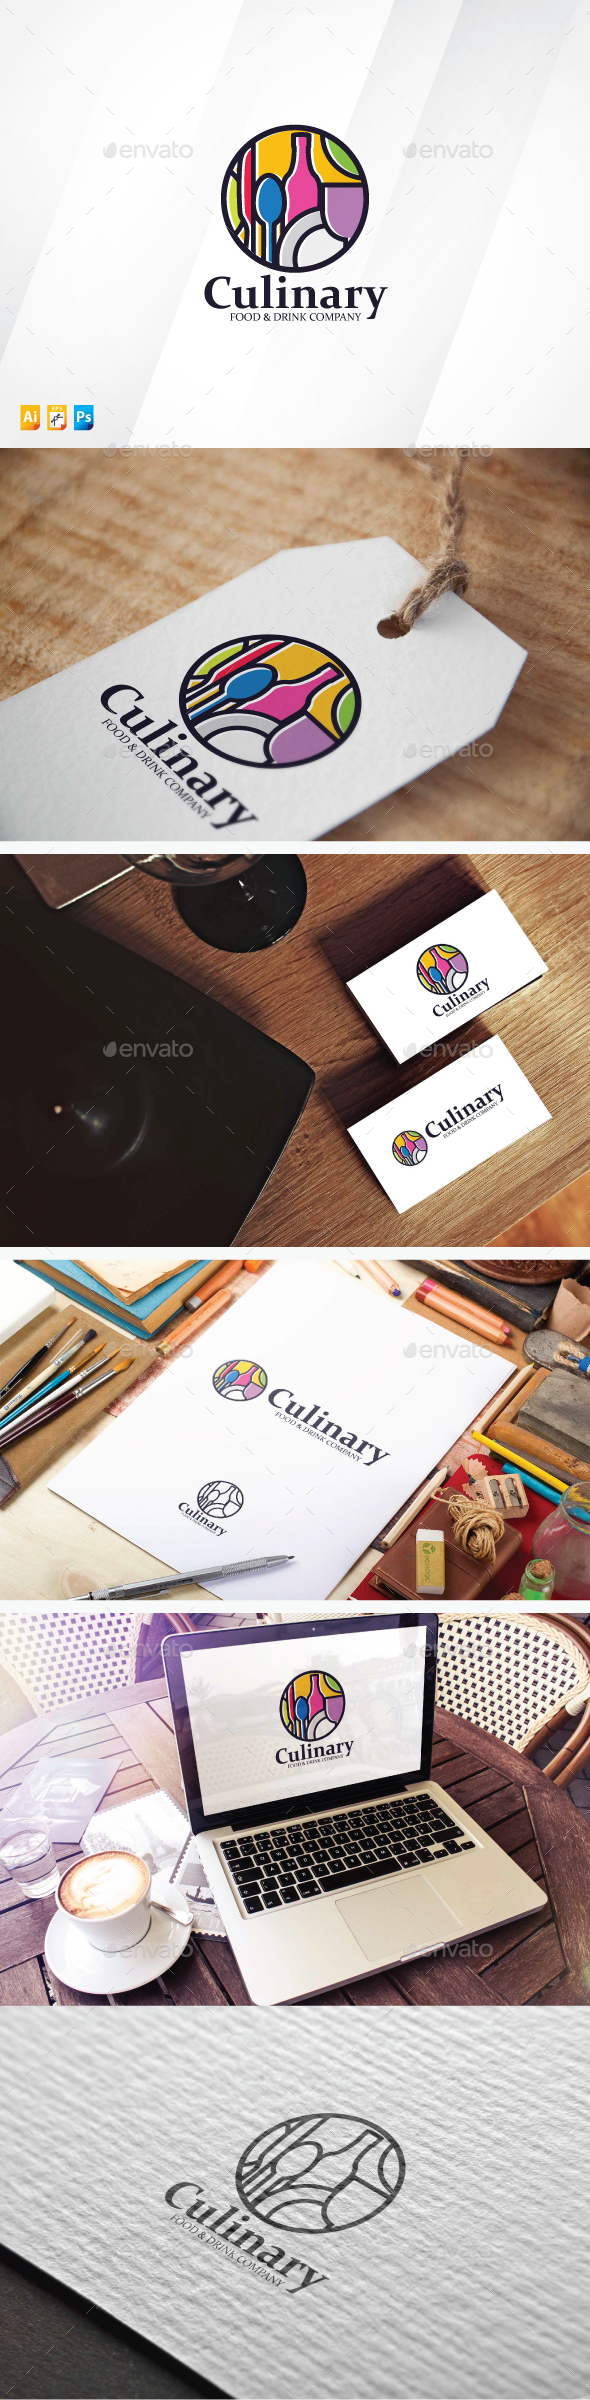 Culinary - Food Logo Templates